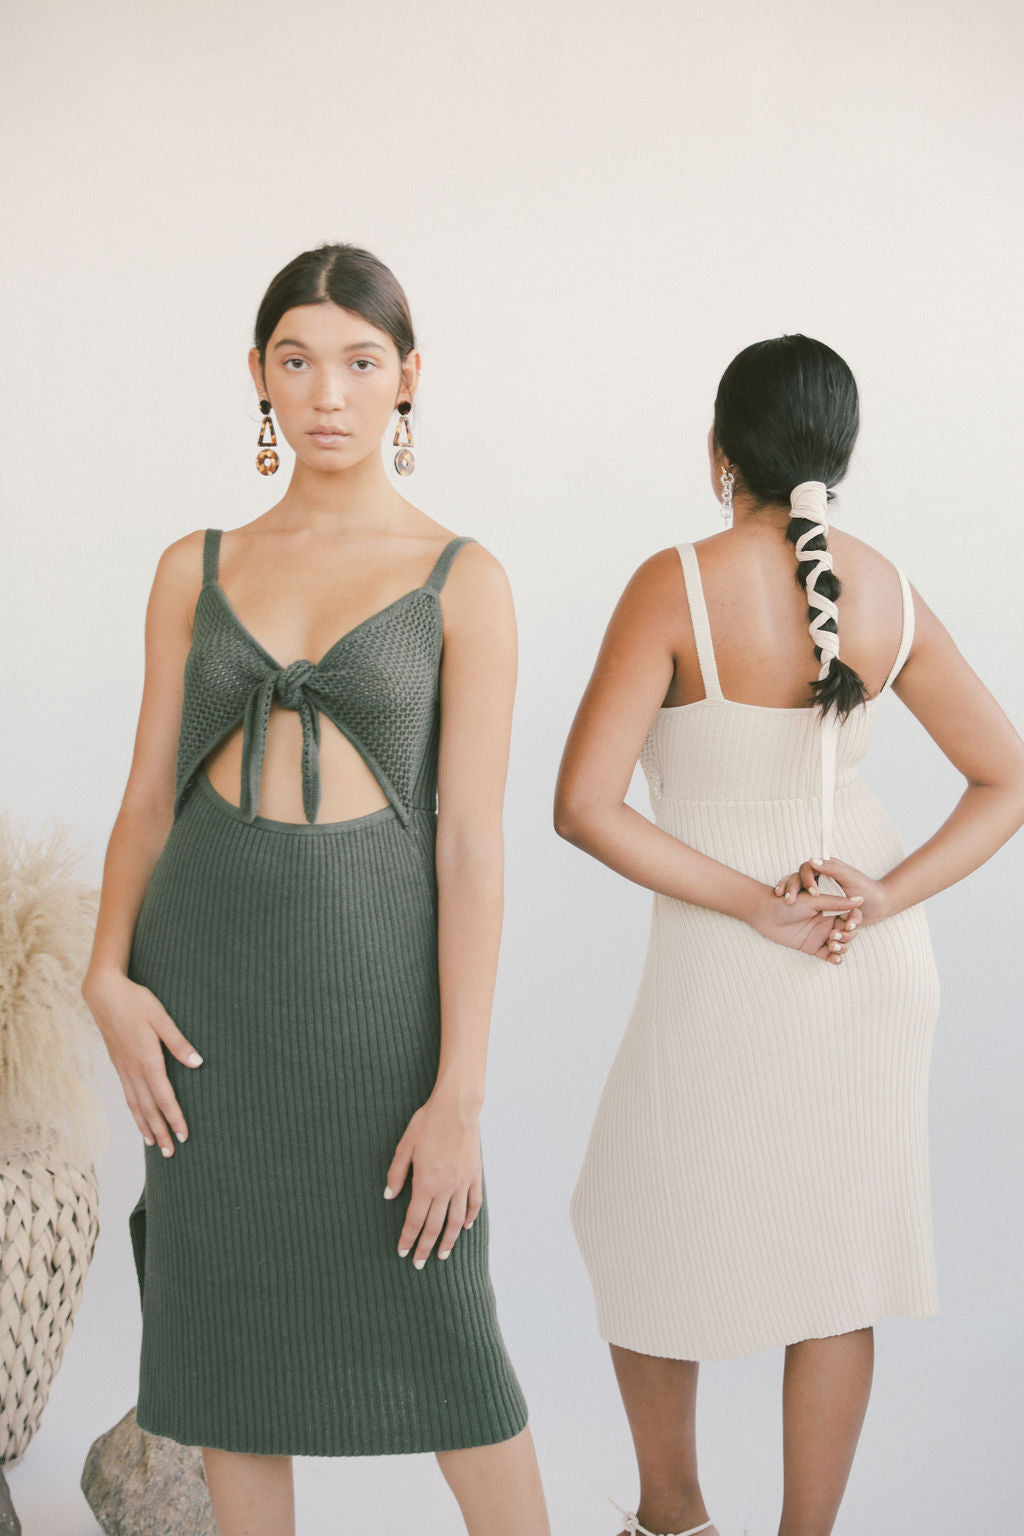 Caliente Dress Olive grid image